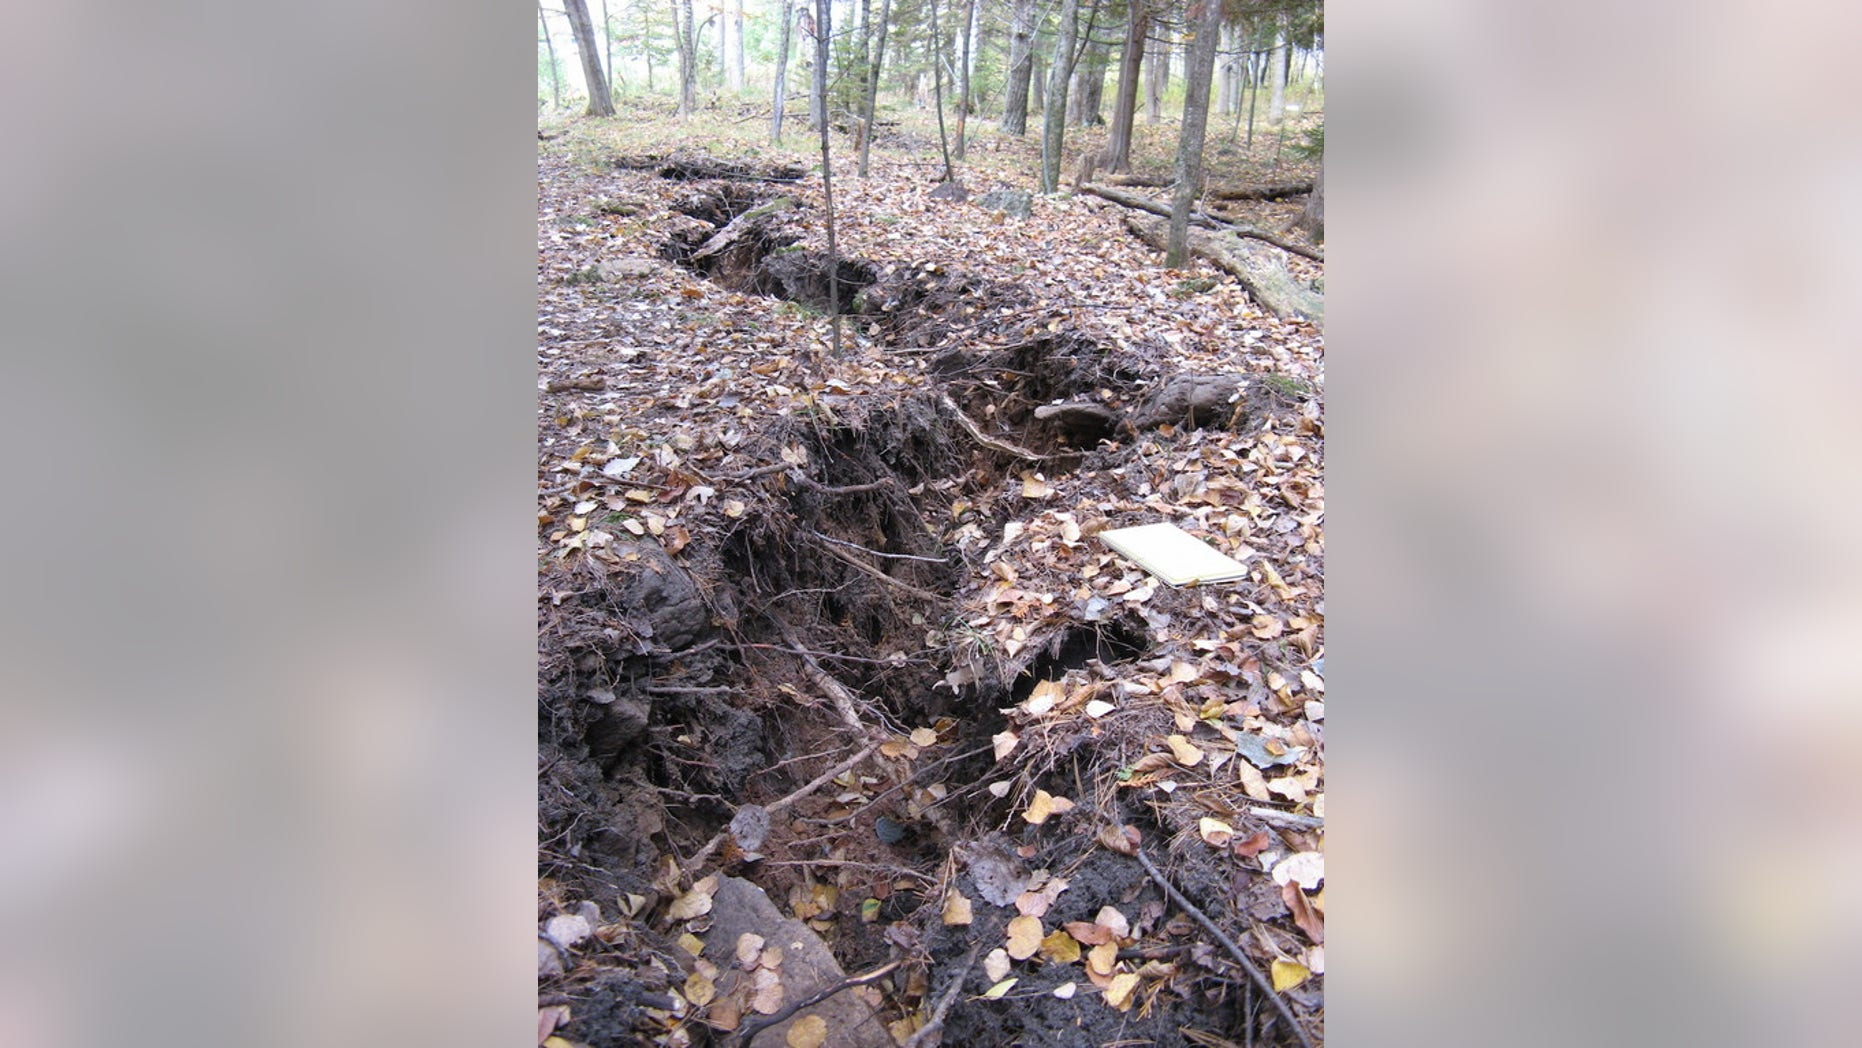 A long crack that popped up in a Michigan forest on Oct. 4, 2010, uprooted trees and caused others to tilt.